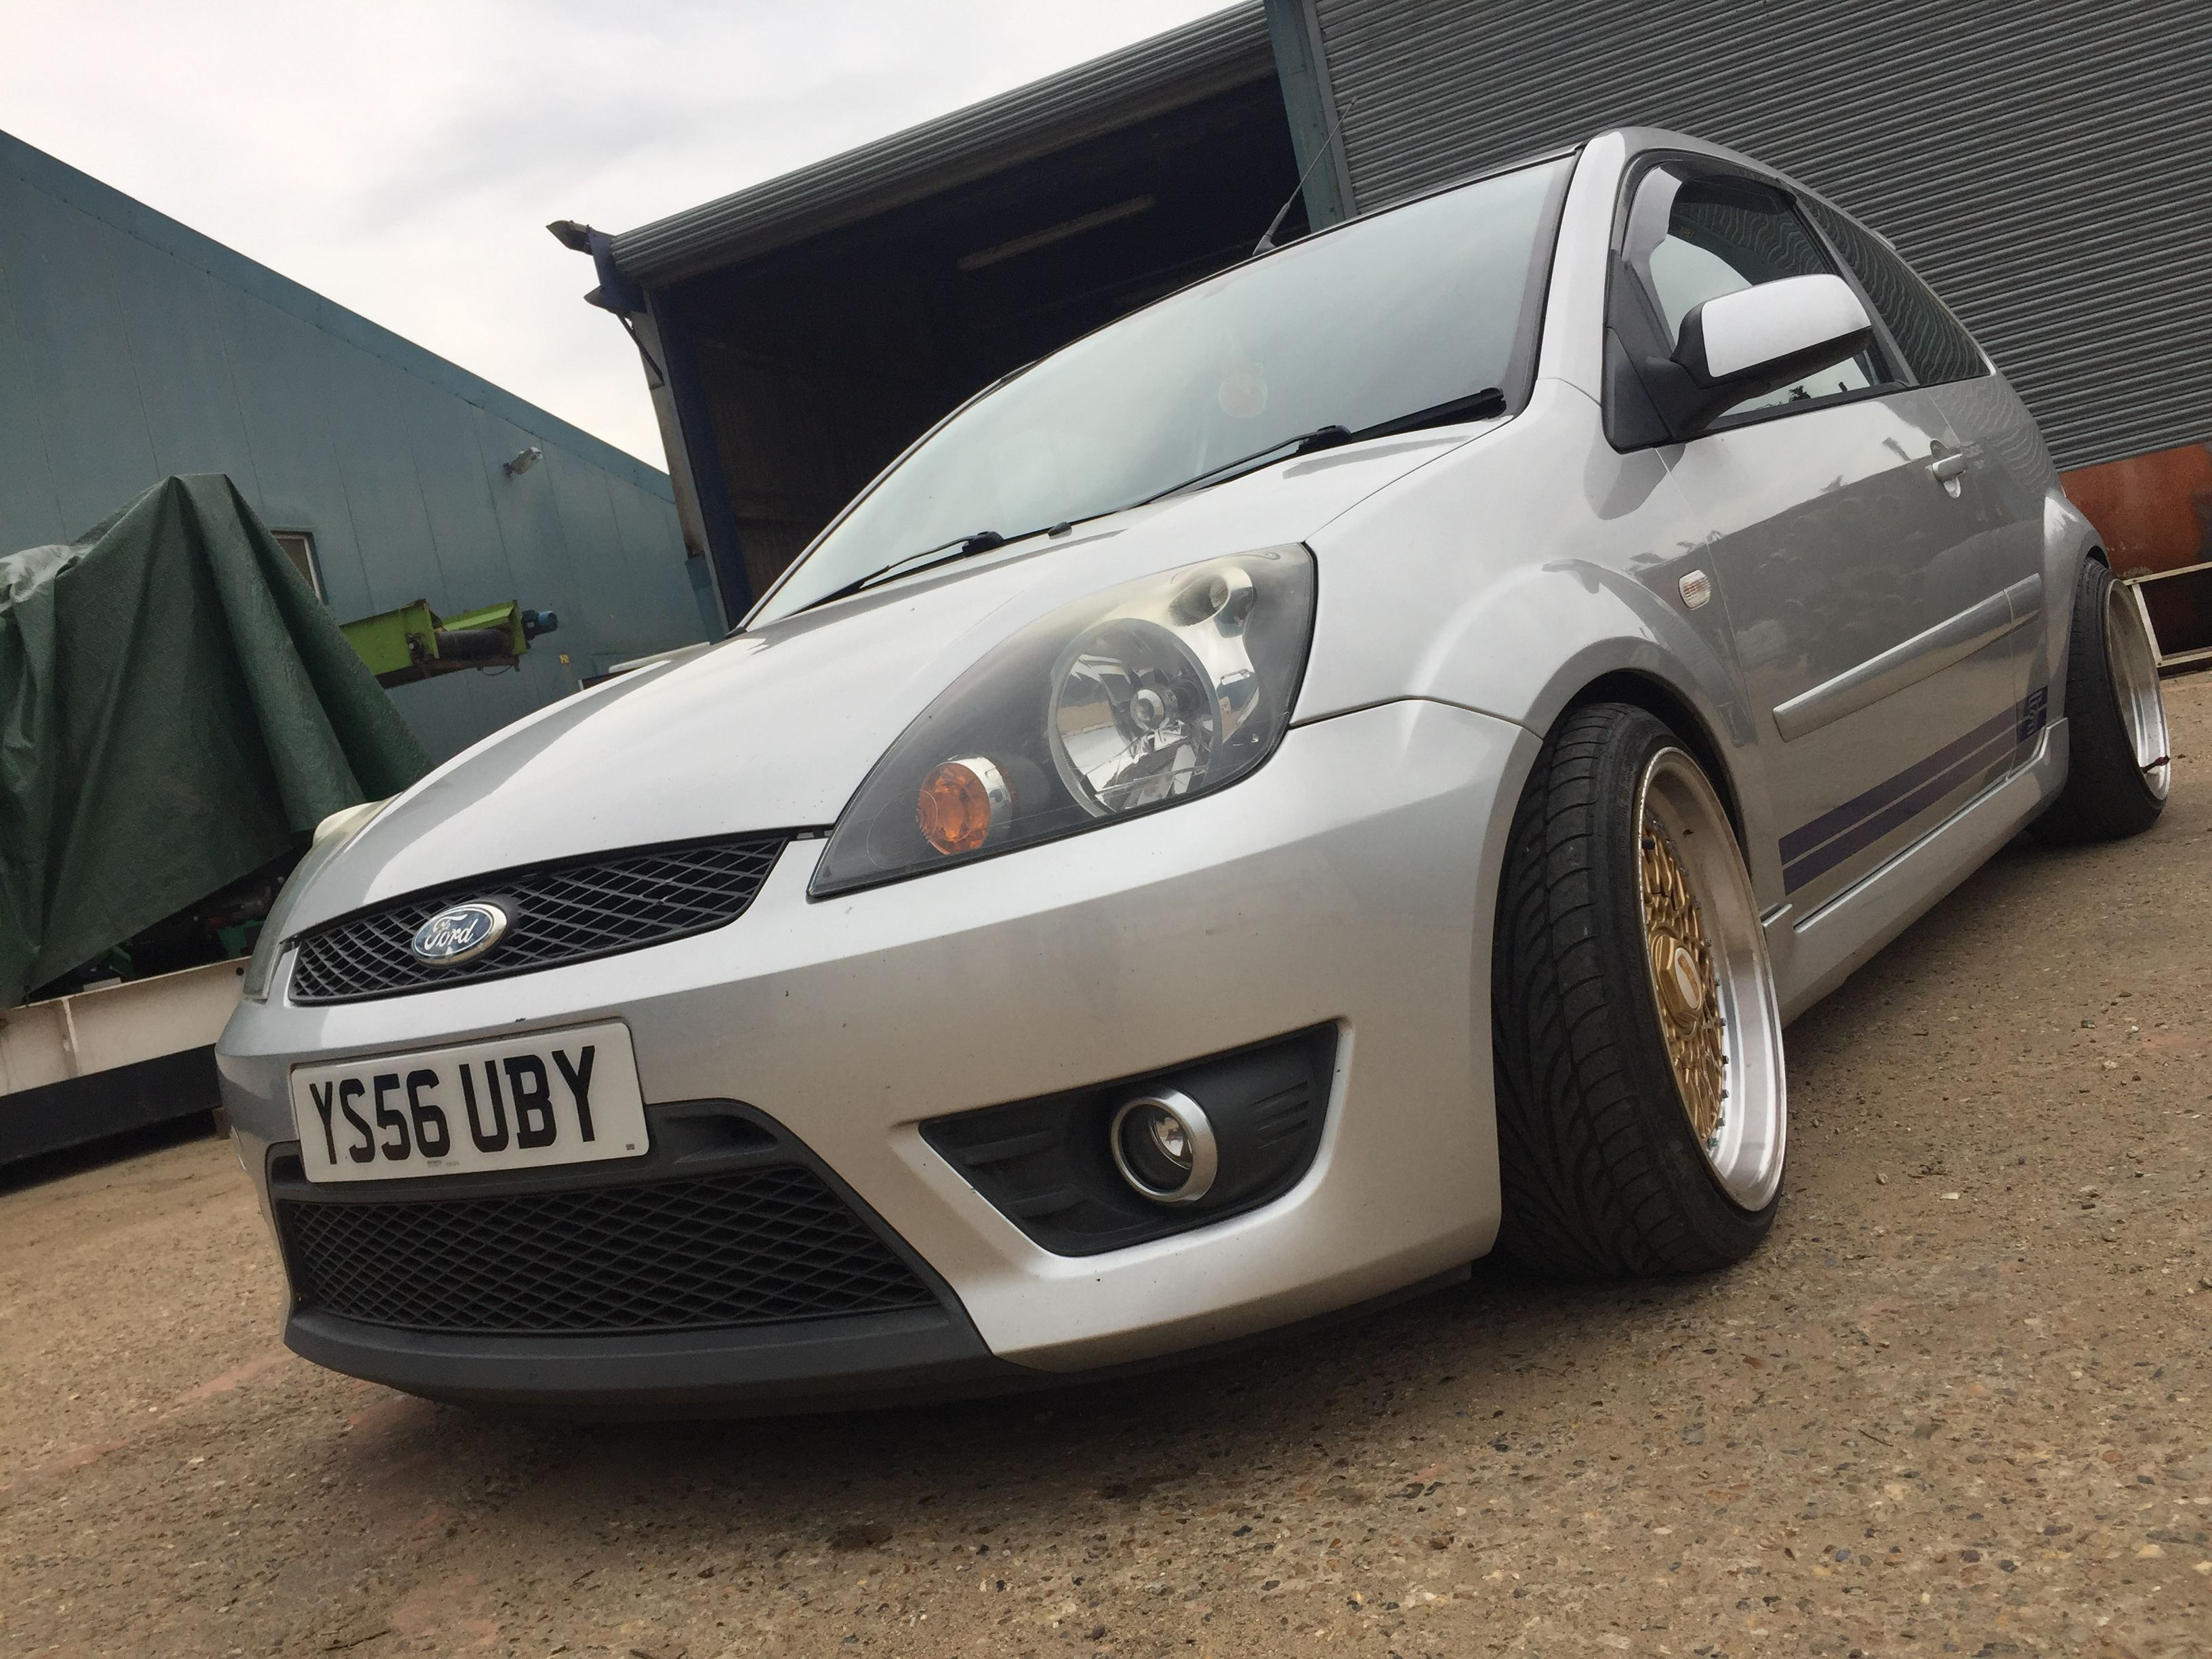 Ford Fiesta Mk6 St 150 Lowered On Coilovers Bbs Style 16